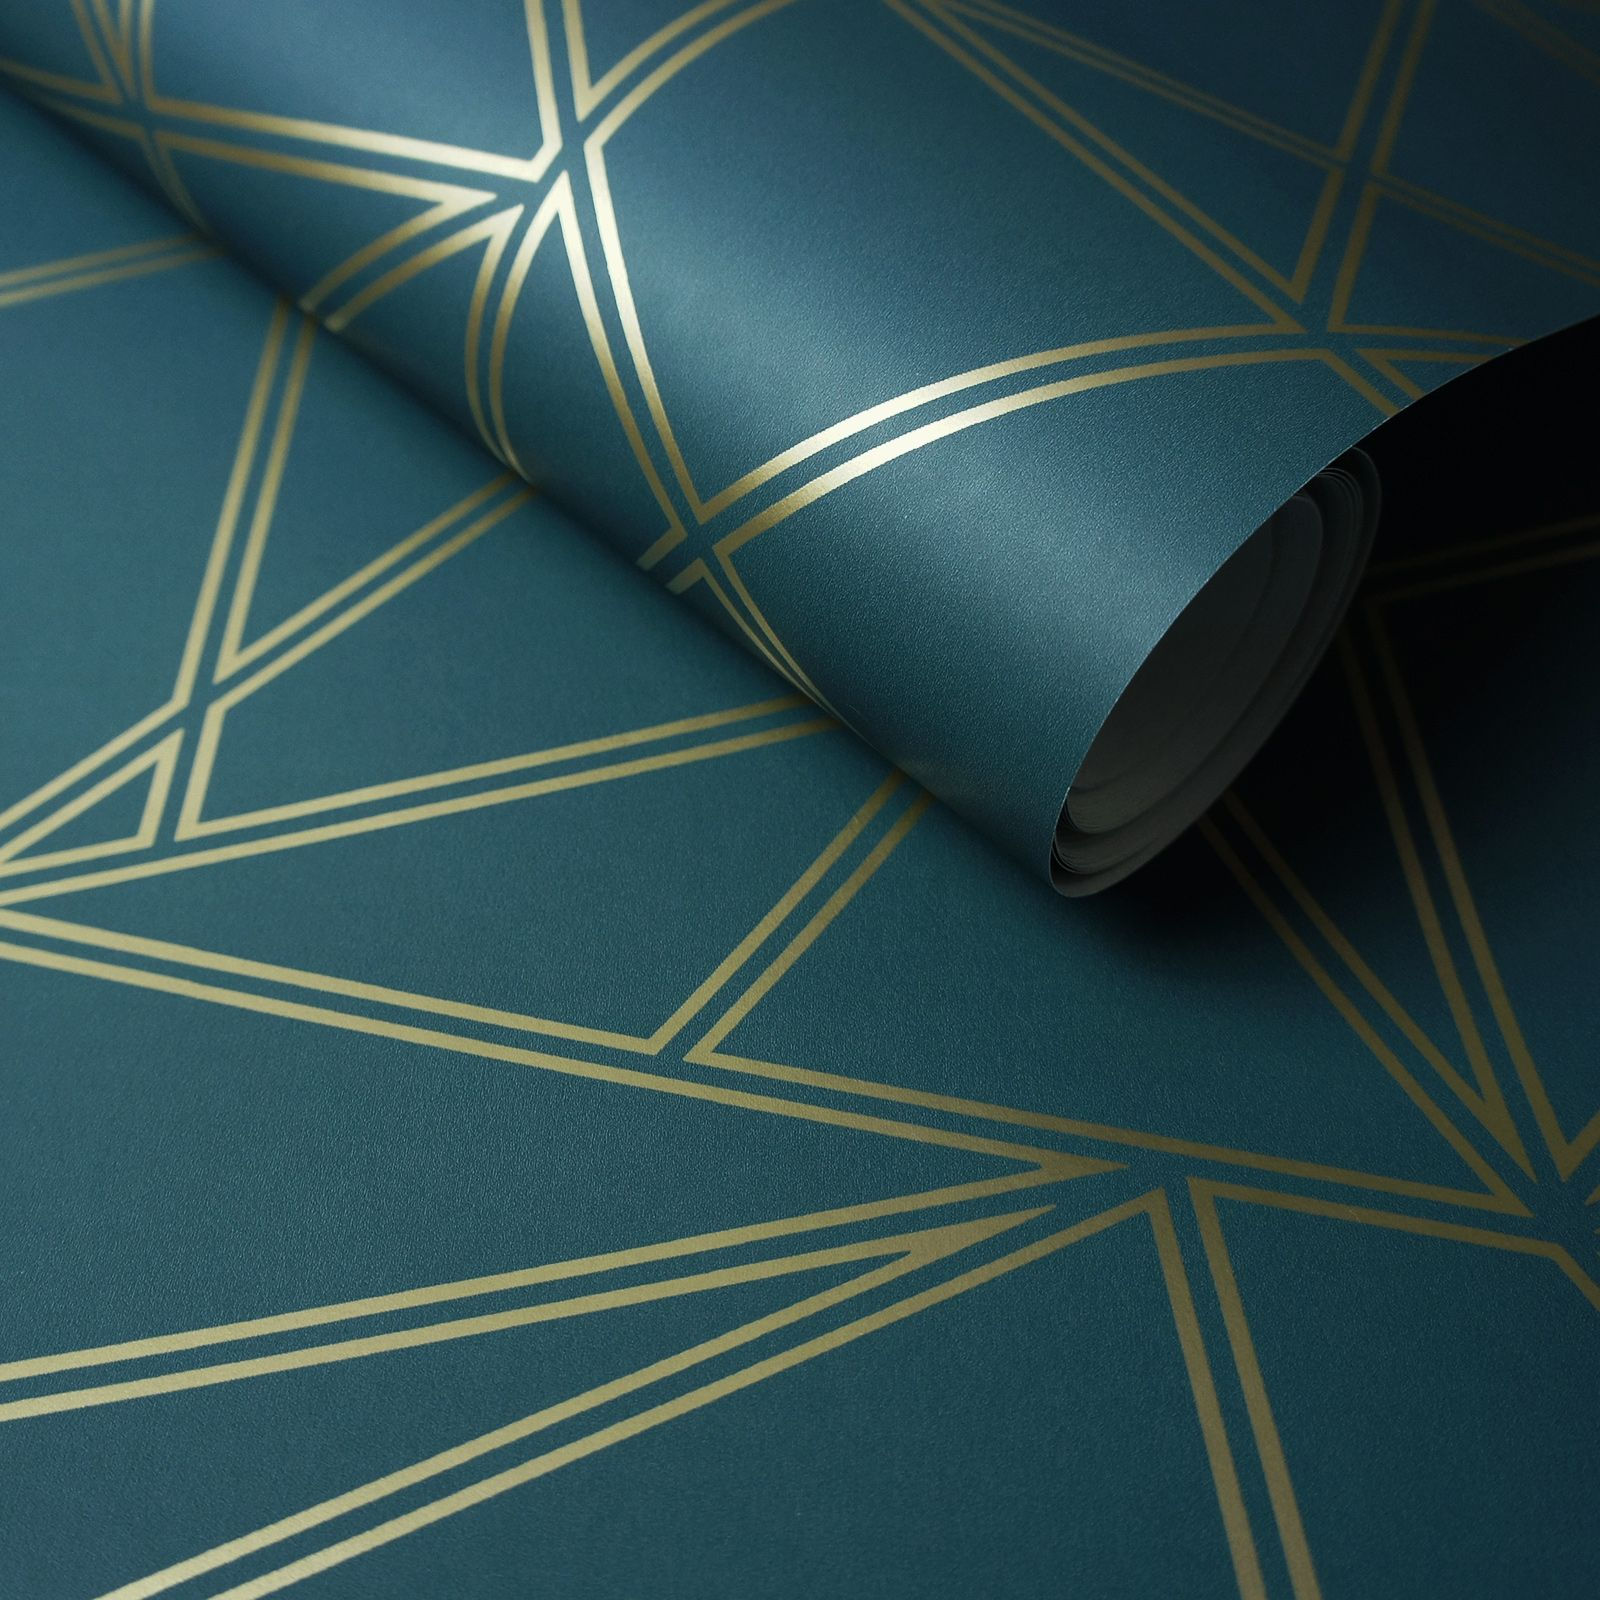 Paladium Geometric Wallpaper Teal / Gold Holden 90110 images